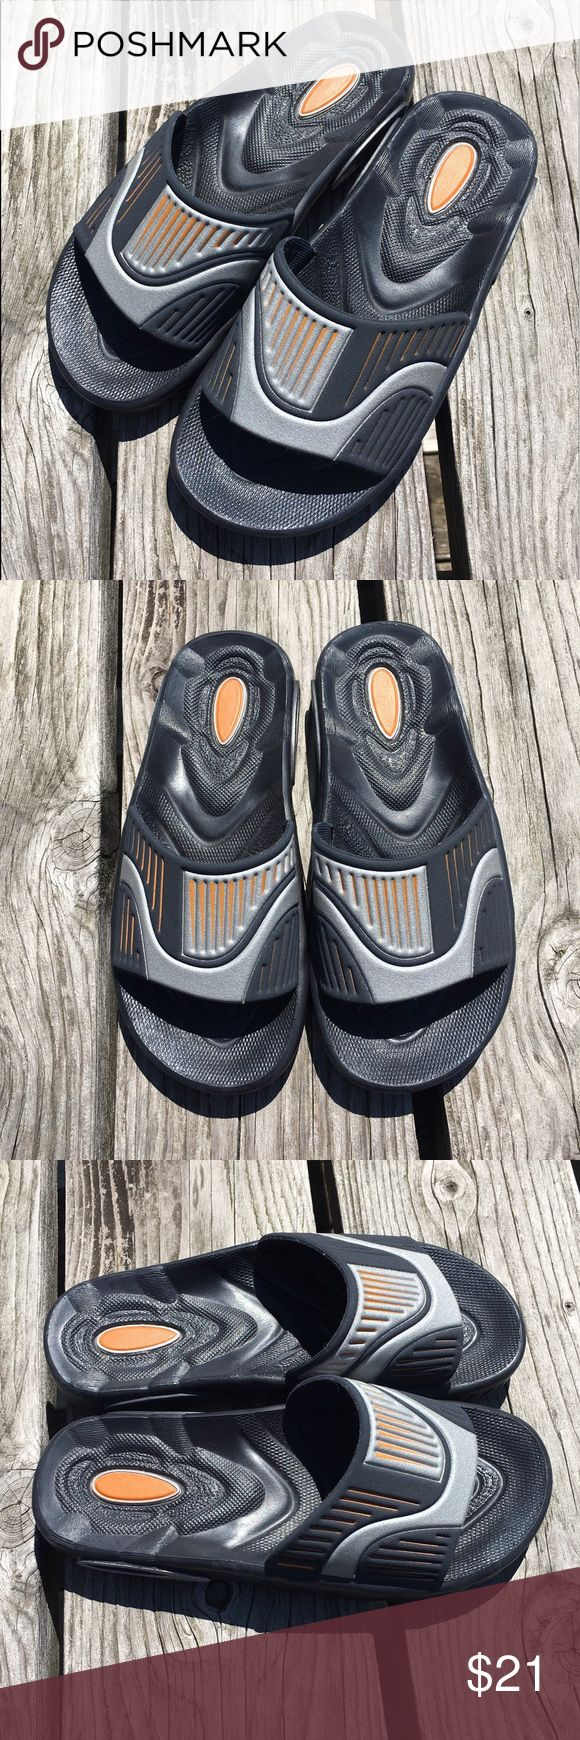 🆕List! Kids Black/Silver Slides! EEUC! Worn once! Boys slides, black with silver and a touch of orange. Grendene Shoes Sandals & Flip Flops